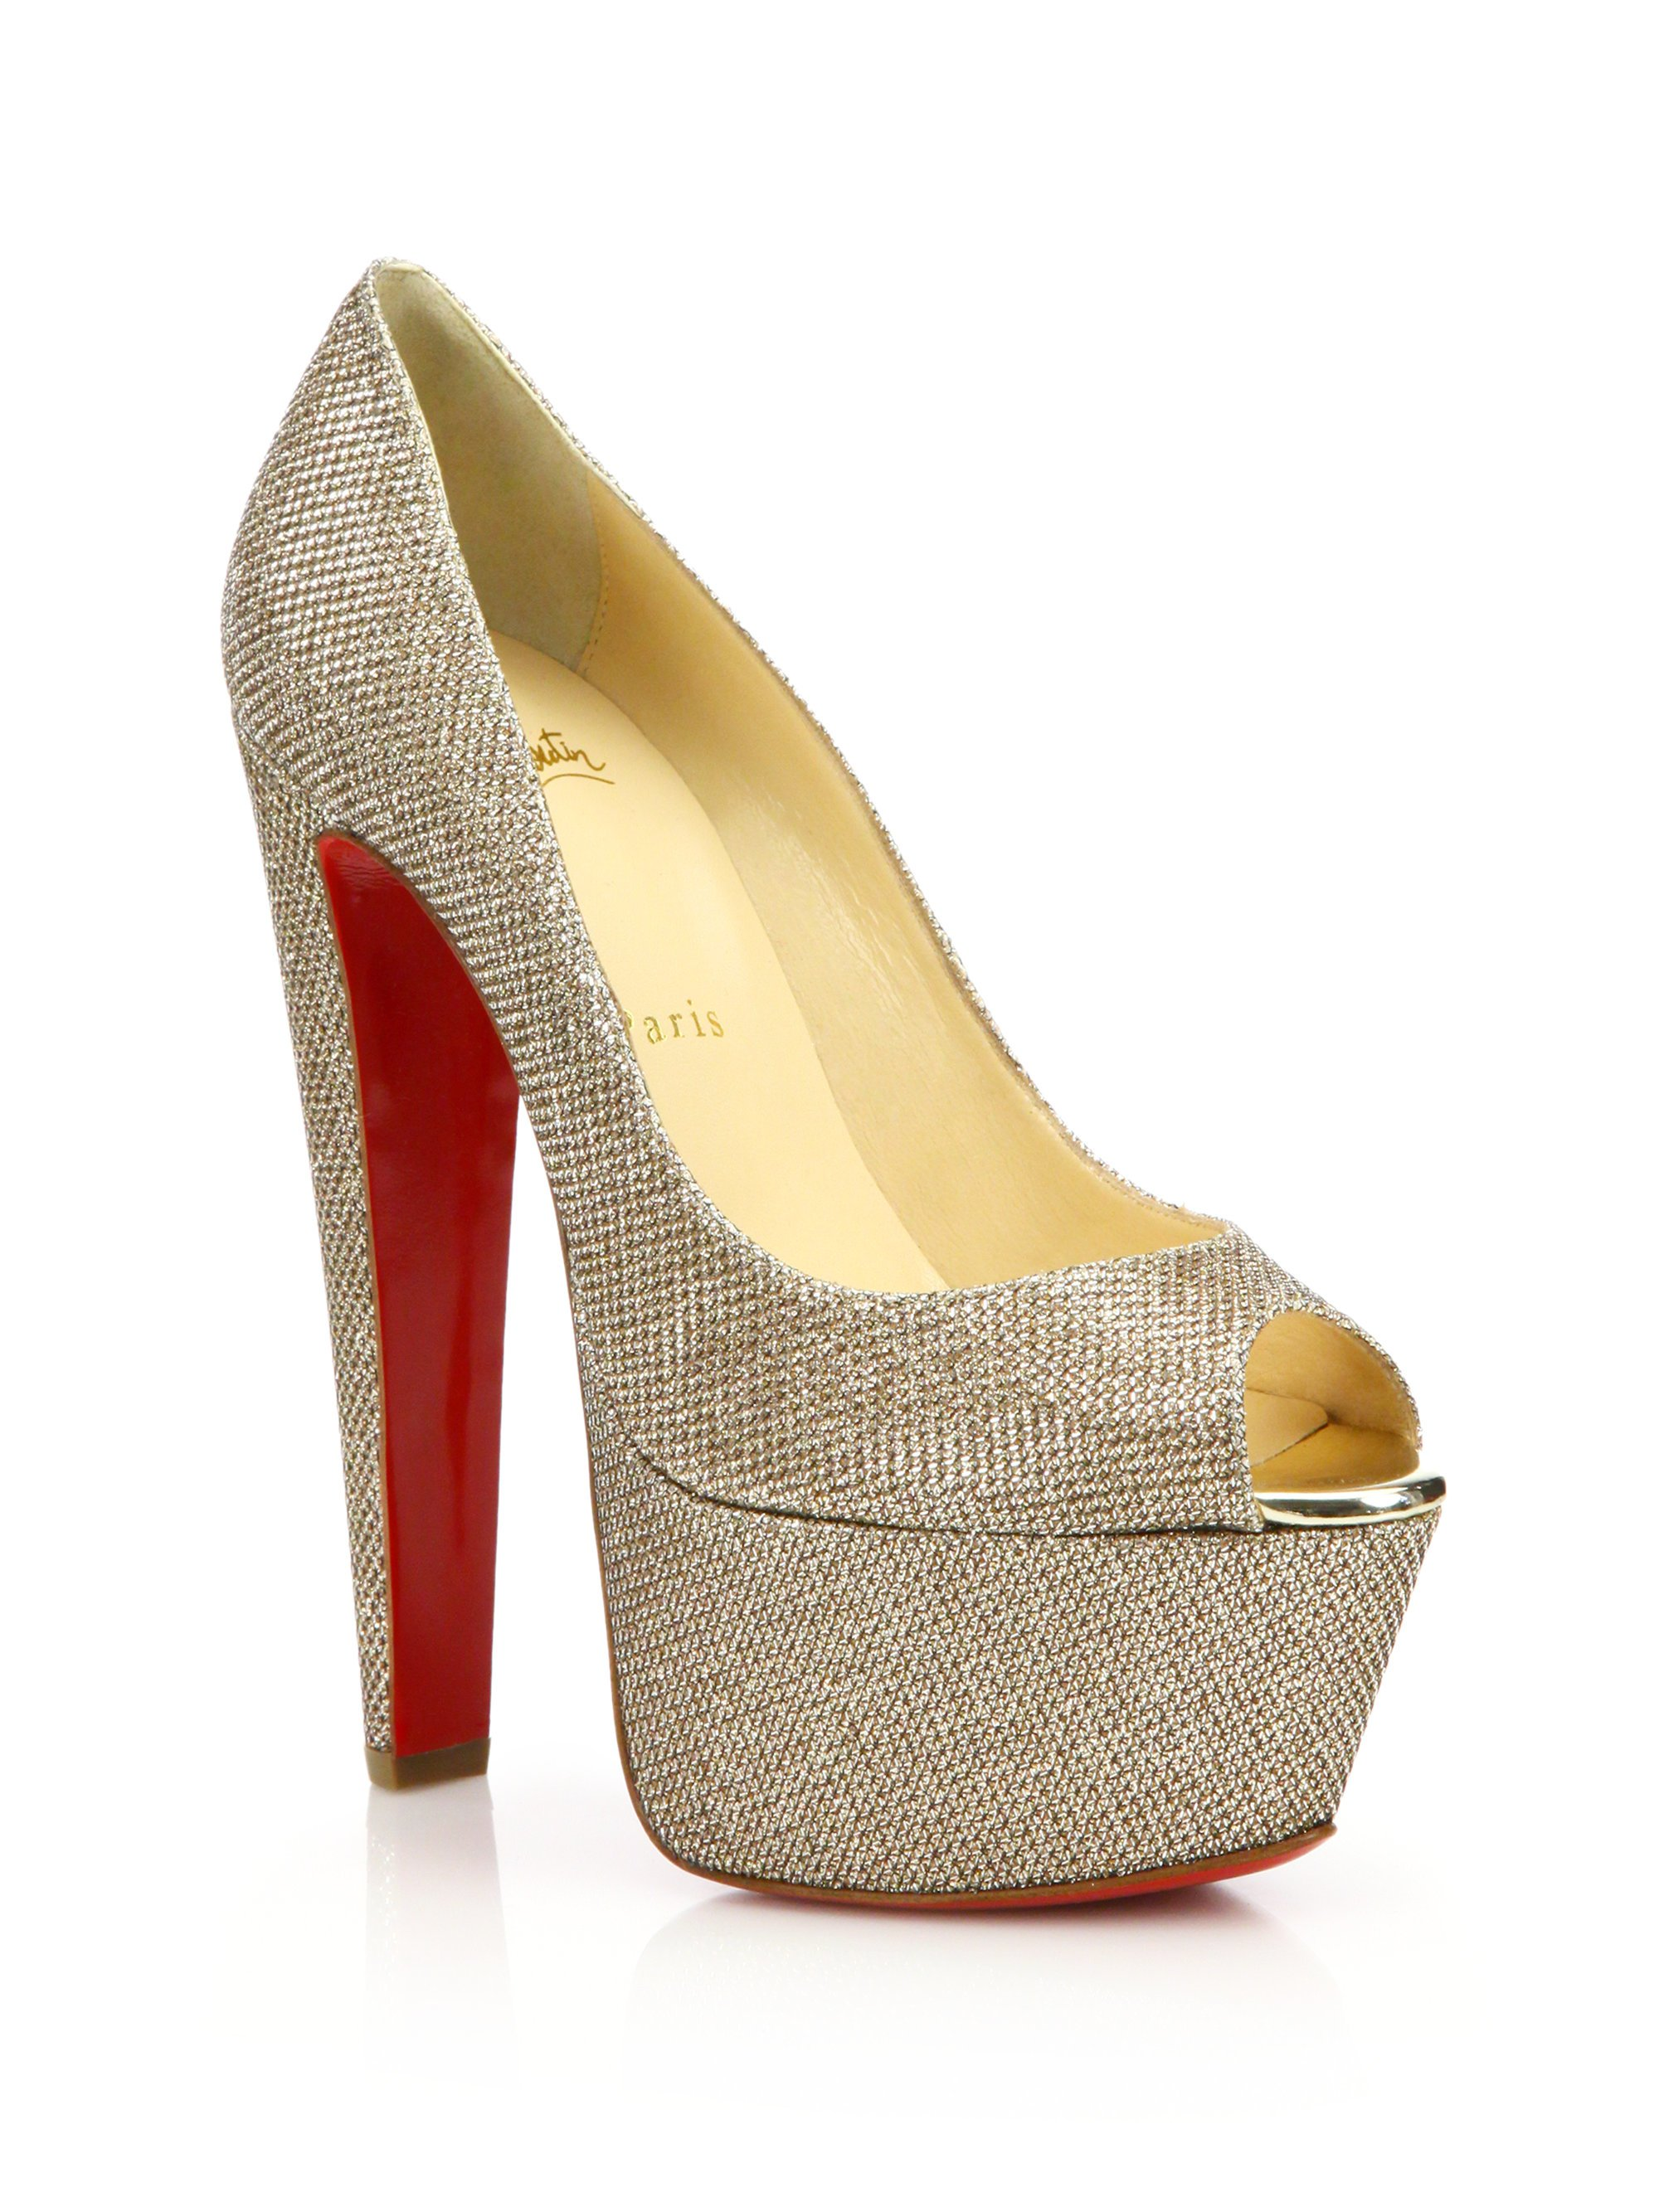 Artesur ? christian louboutin Very Prive python peep-toe pumps ...